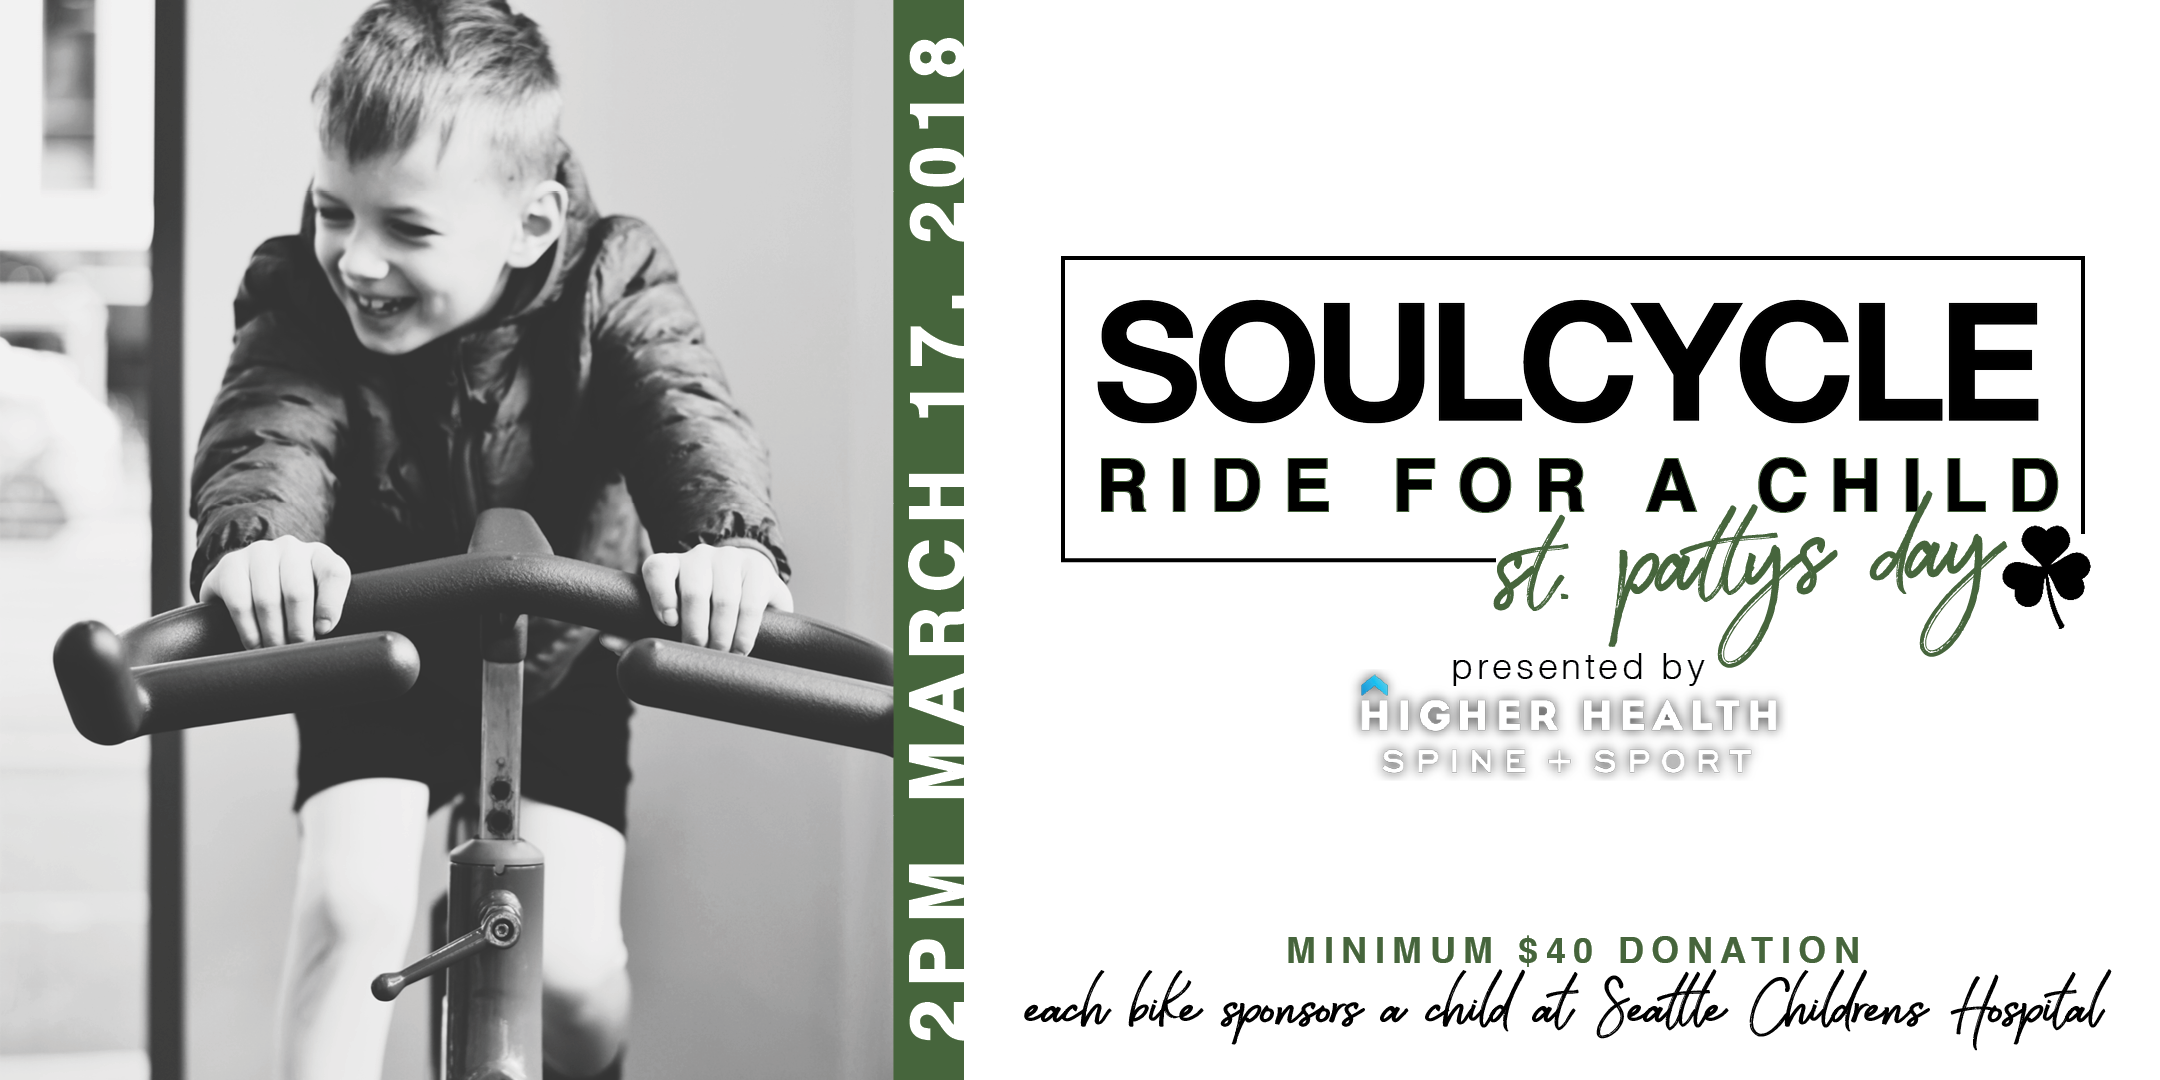 soulcycle ride for a child 2.2.png